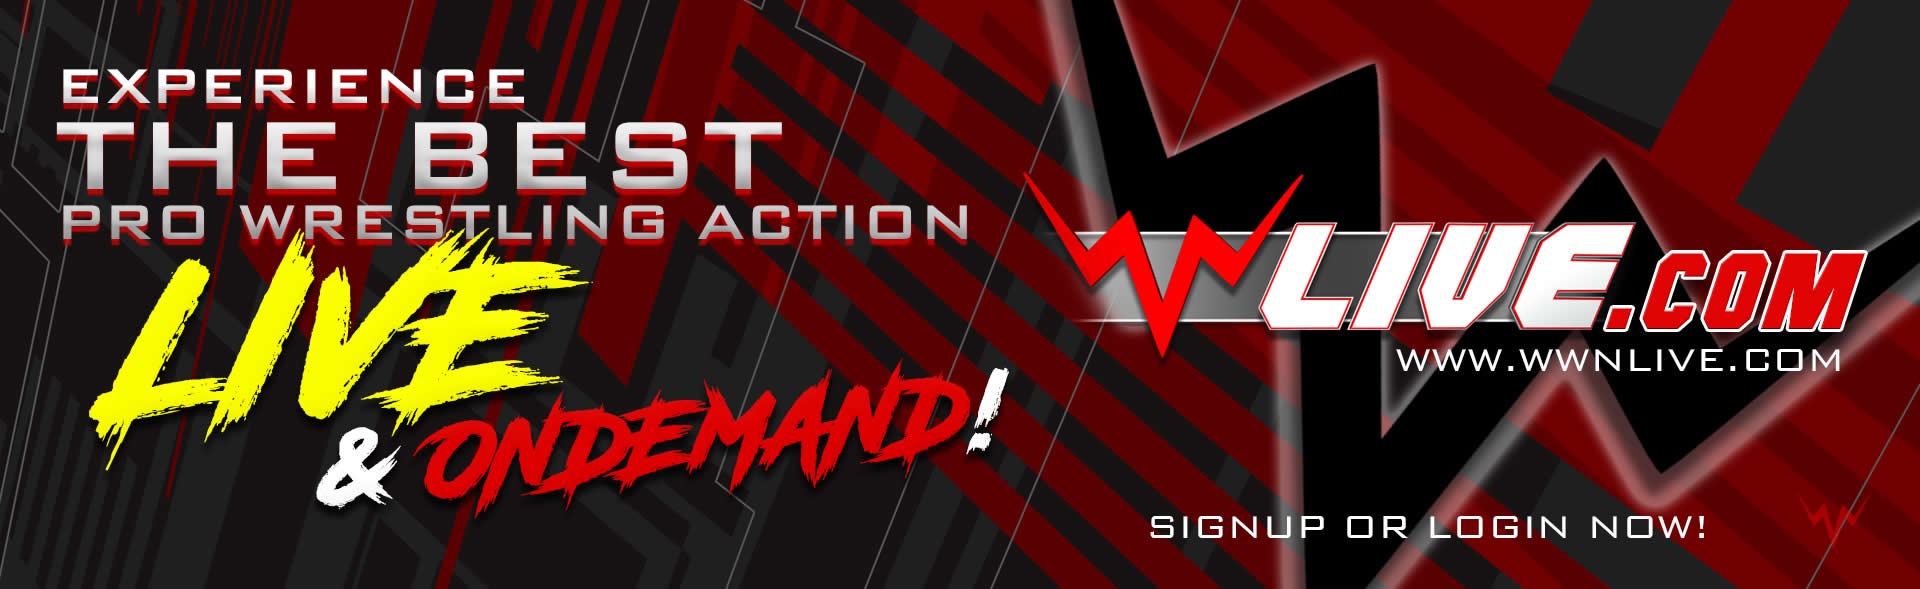 BANNER-1920X589-WWNLIVE_PROMO